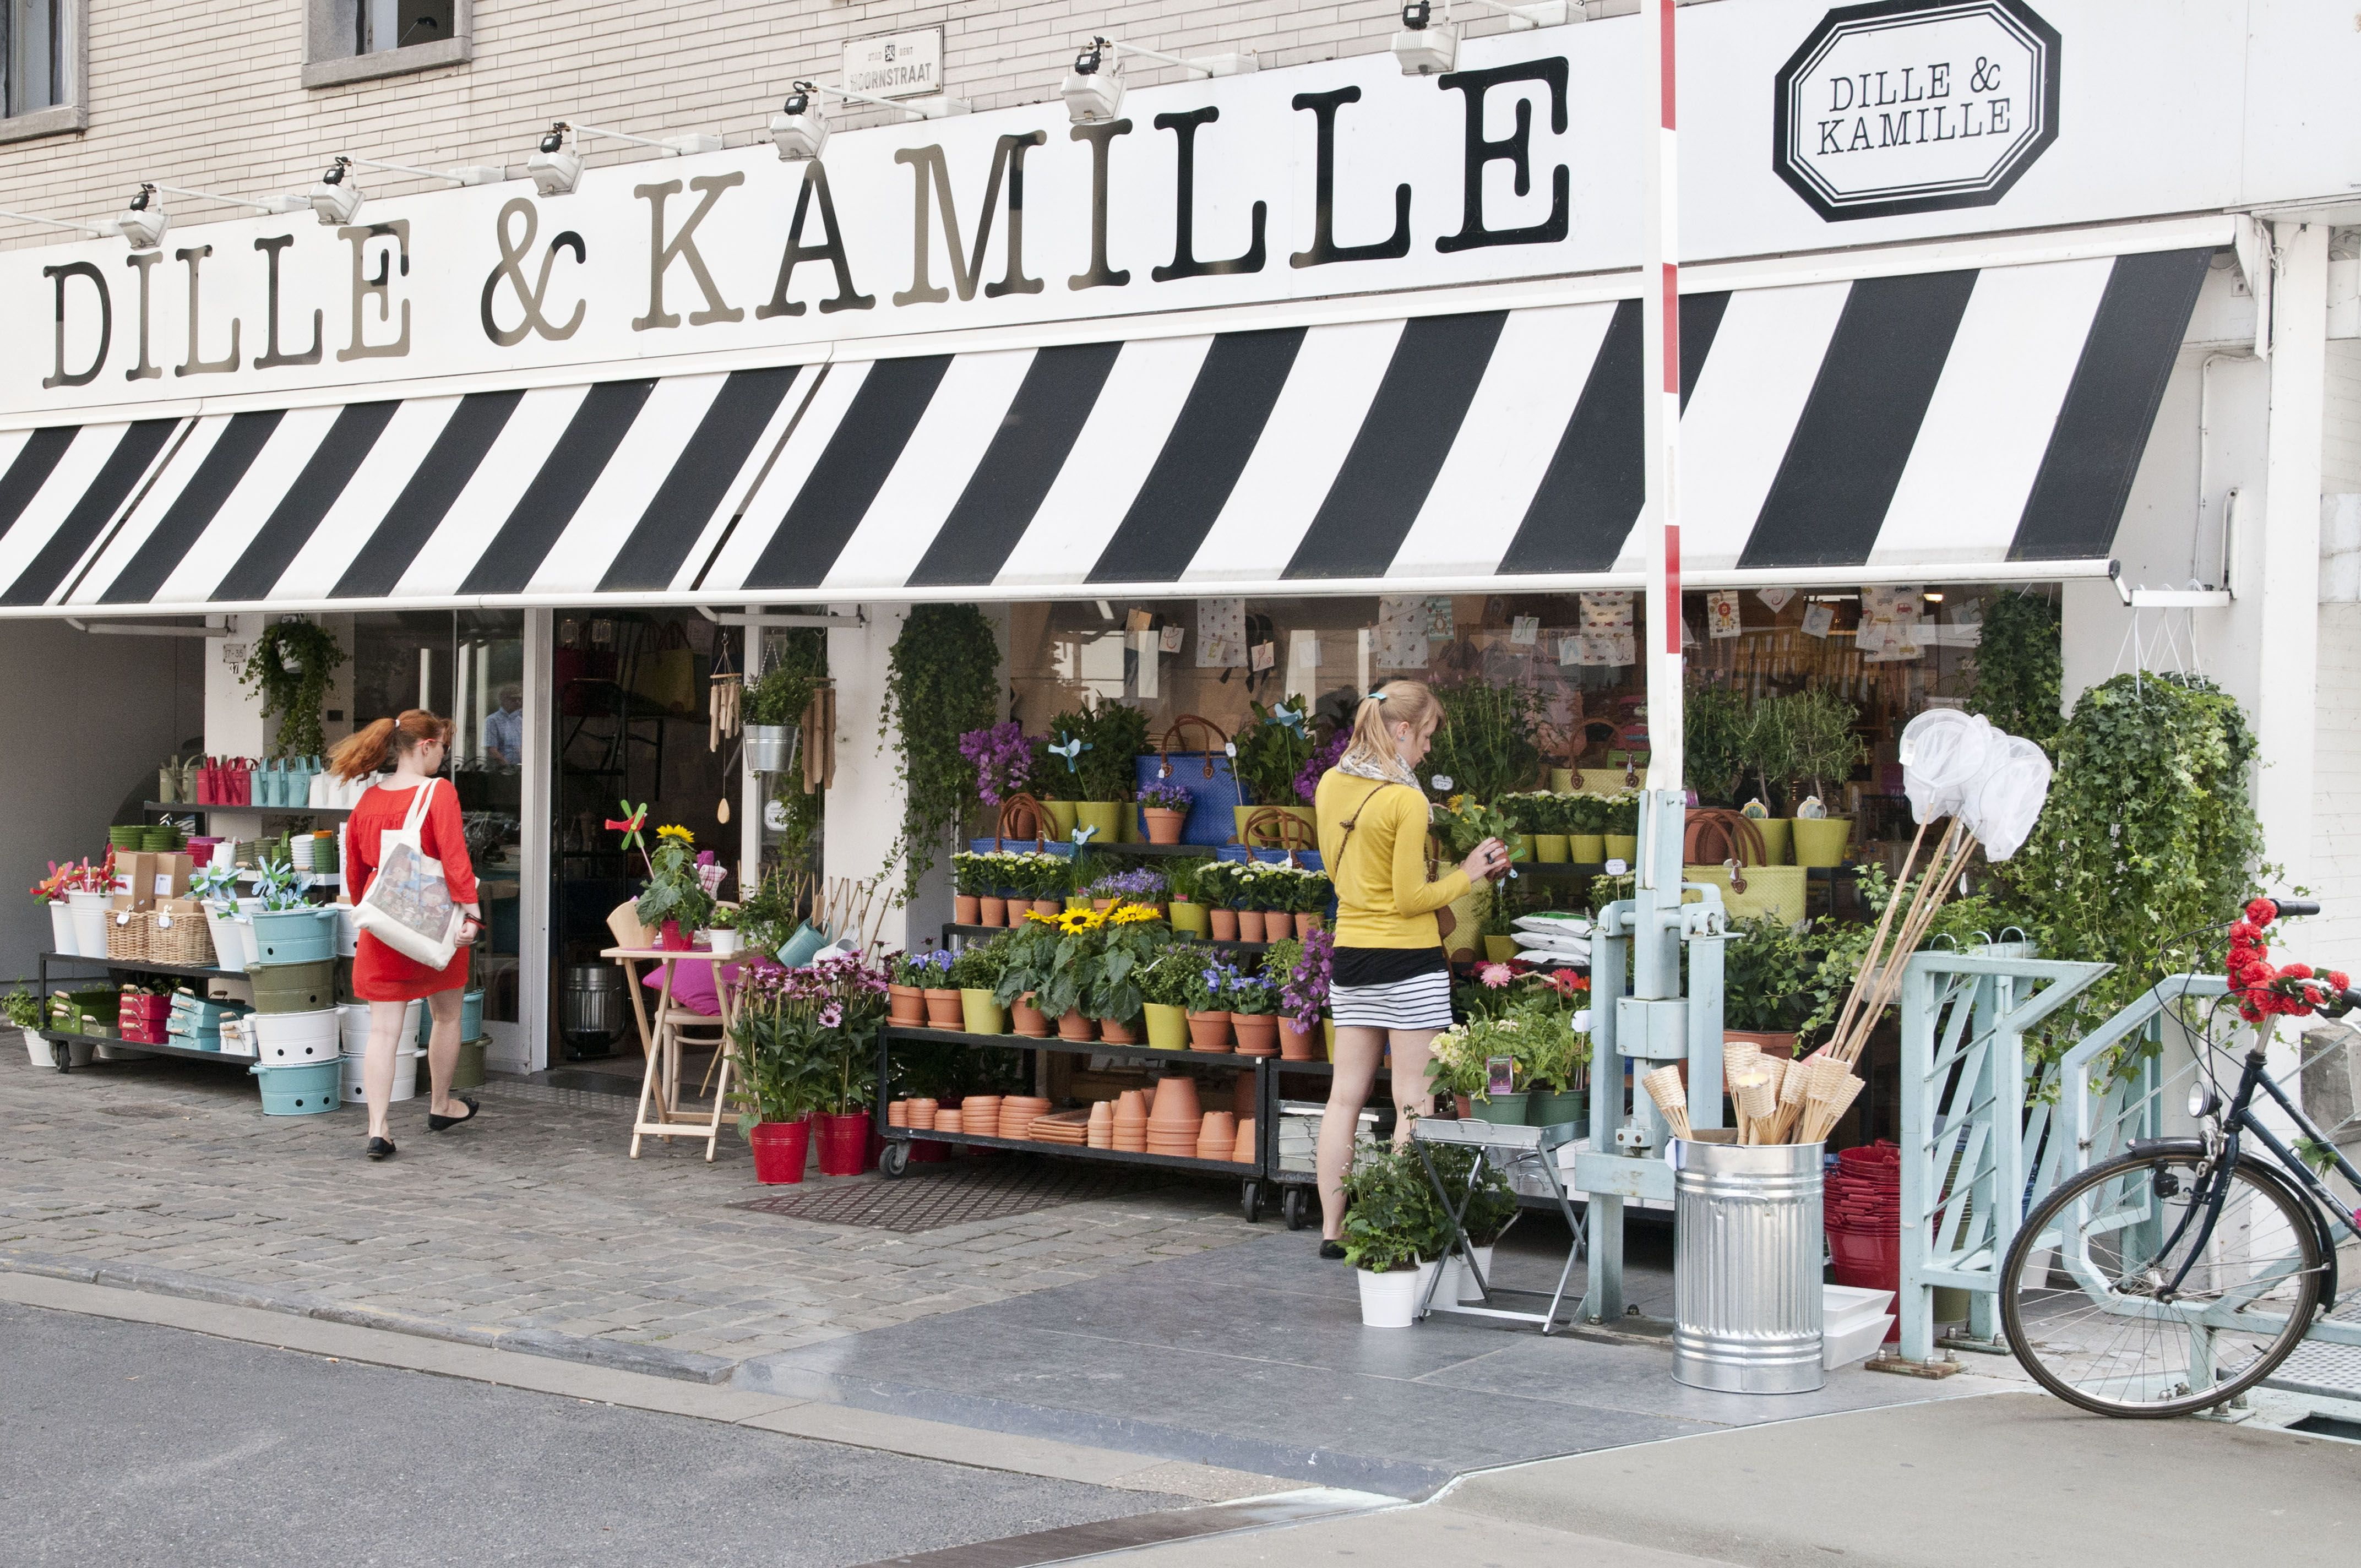 Dille Kamille Amsterdam Dille And Kamille Gent Our Shops In Belgium Pinterest